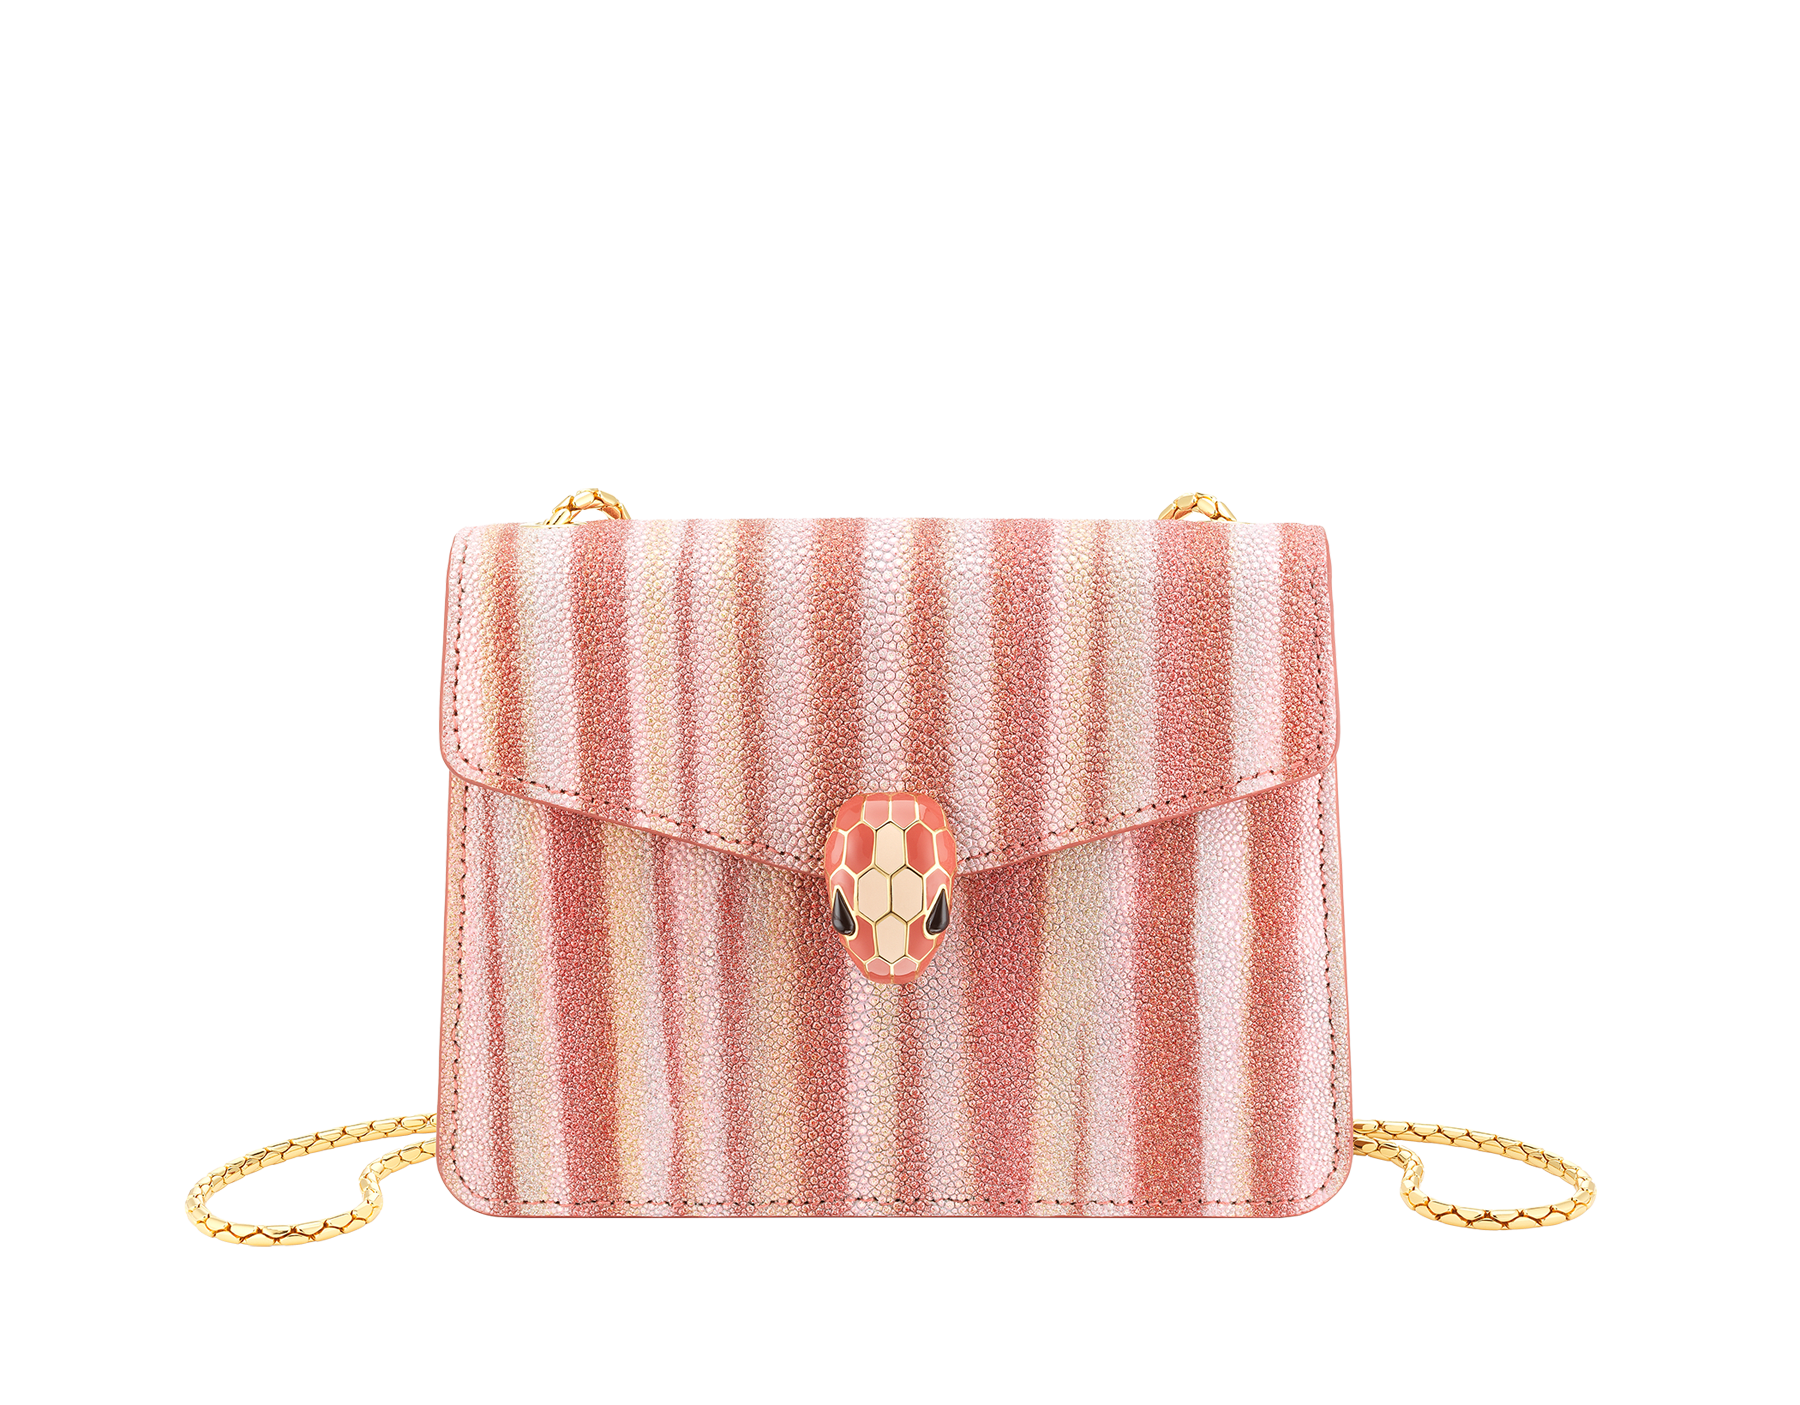 """Serpenti Forever"" crossbody bag in multicolor ""Ministriped"" galuchat skin body and peach calf leather sides, with peach nappa leather internal lining. Tempting snakehead closure in gold plated brass enriched with dark and matte peach enamel and black onyx eyes. 290557 image 1"